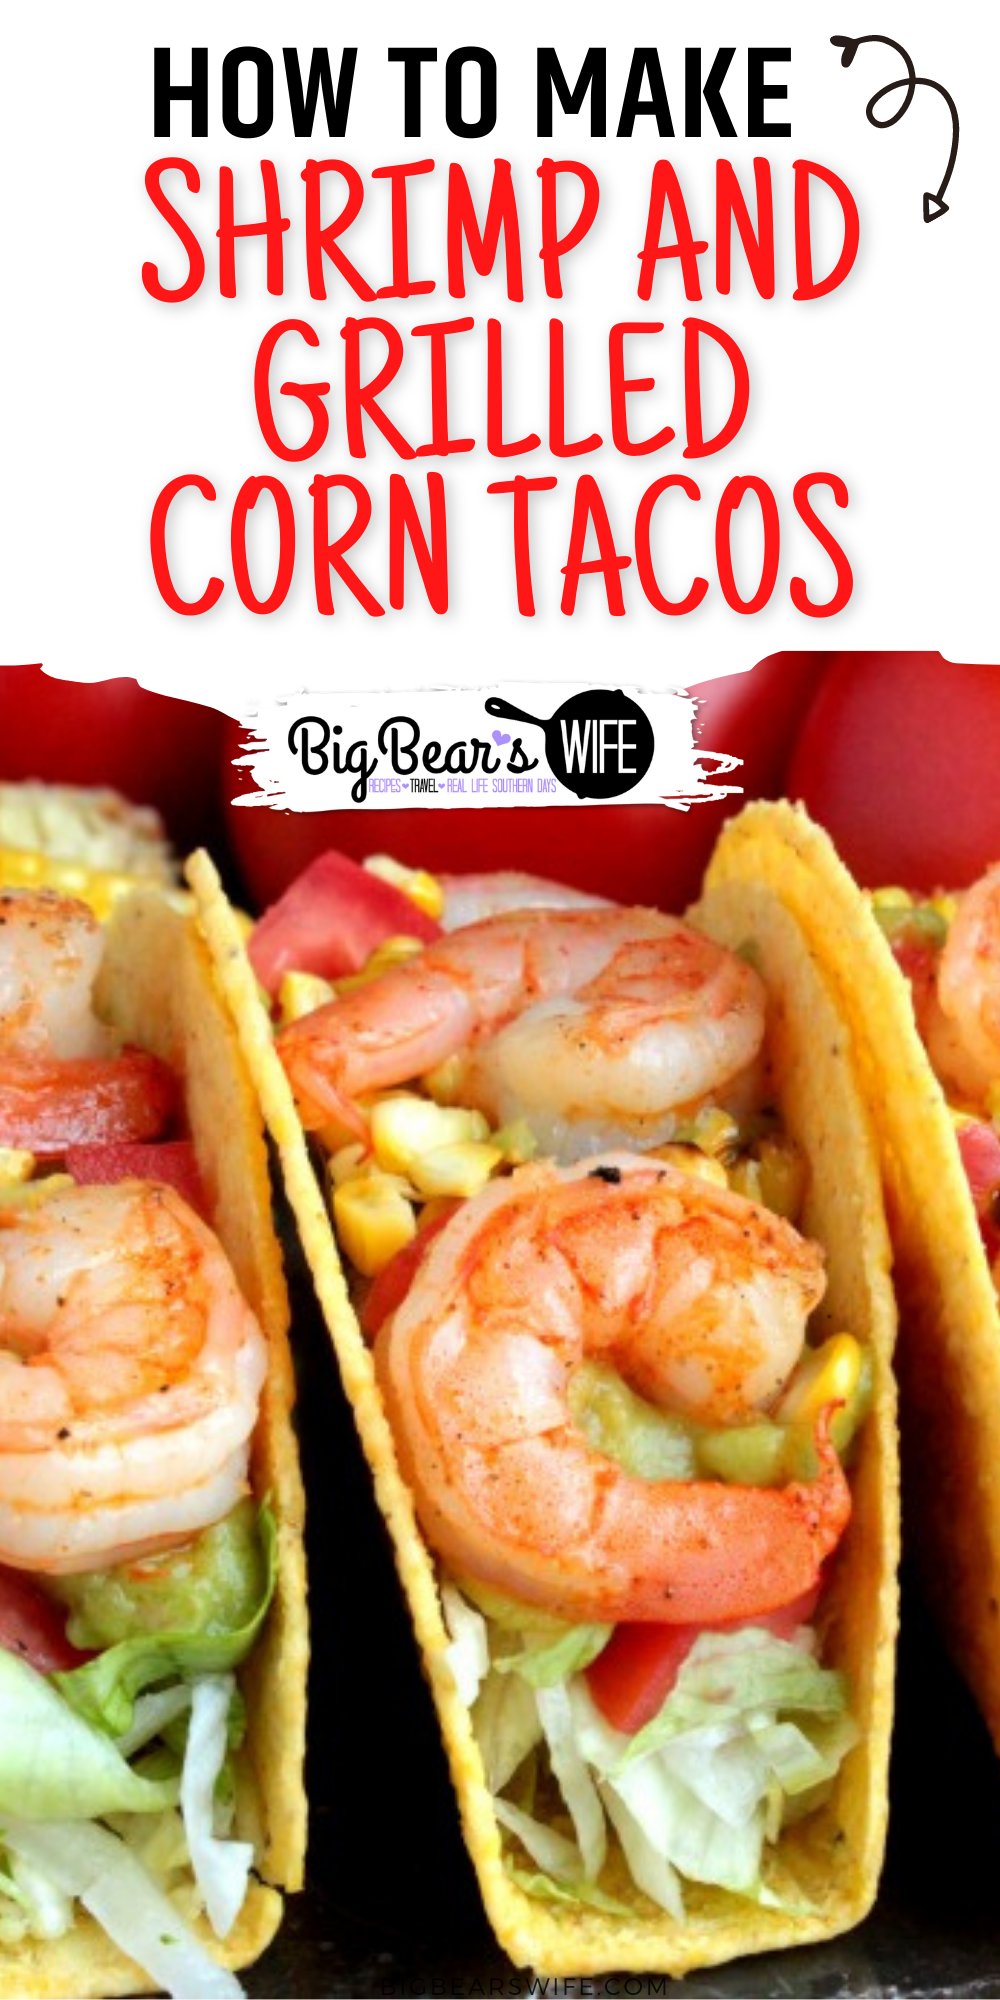 Easy Shrimp and Grilled Corn Tacos that pretty much scream summer! Grilled corn, seasoned shrimp and your favorite fillings make for one perfect taco meal! via @bigbearswife